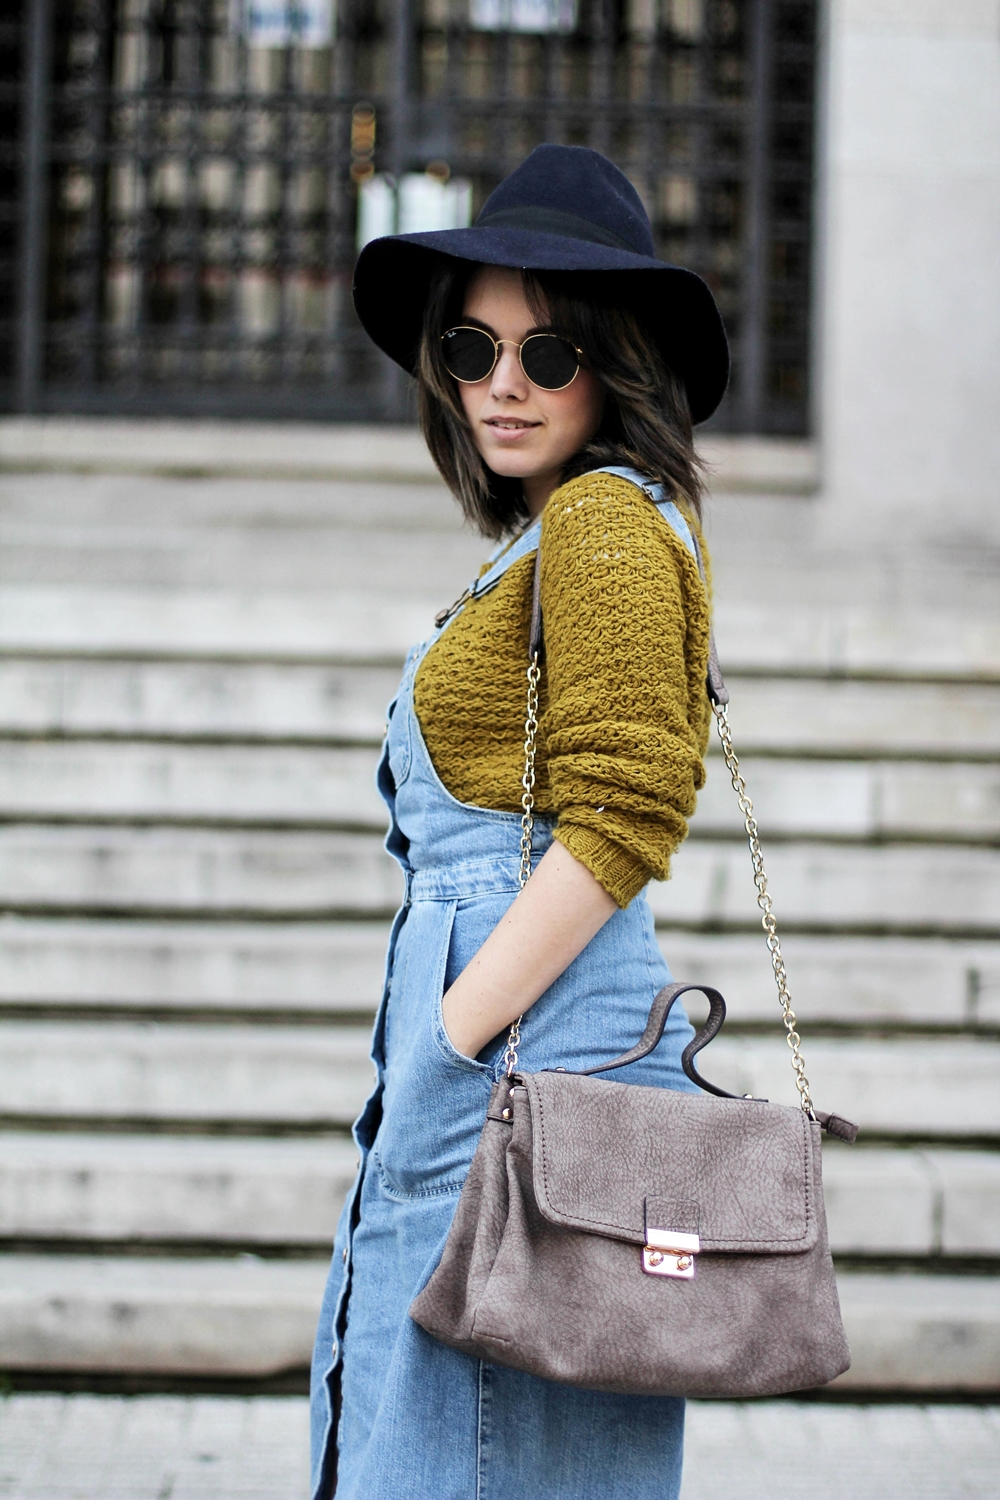 denim pinafore dress zara myblueberrynightsblog